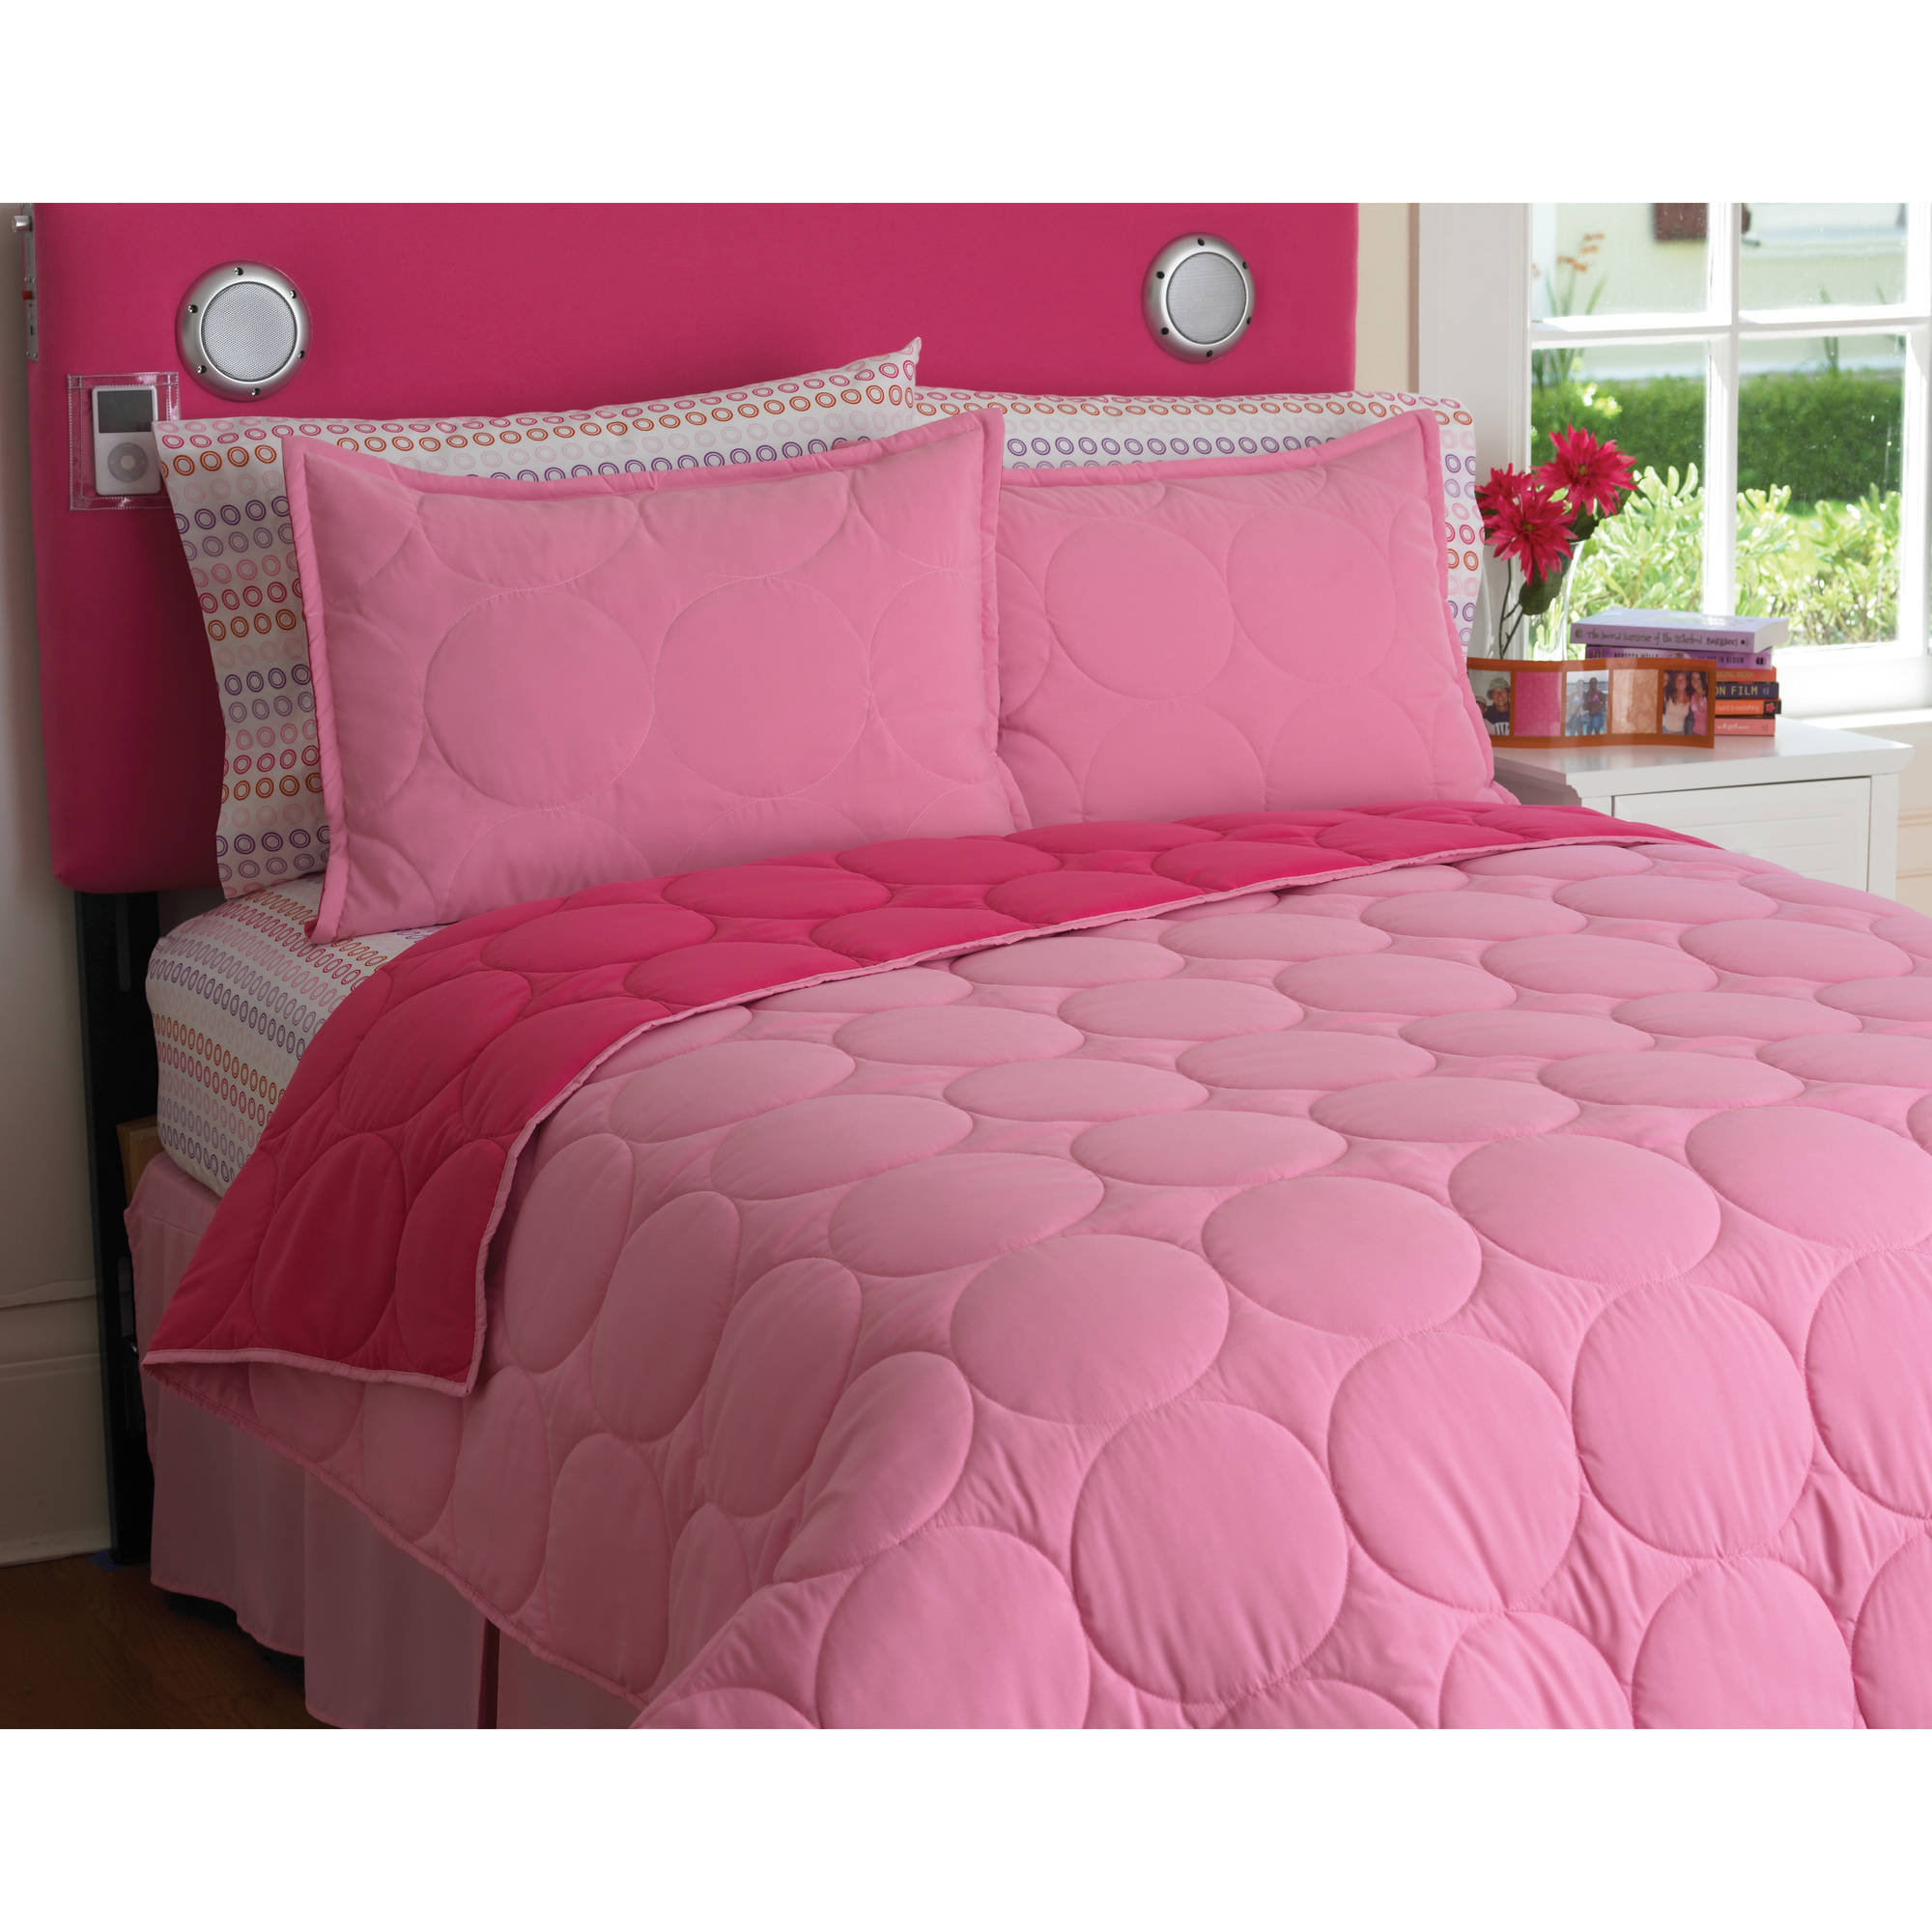 your zone reversible comforter and sham set, pink stitch